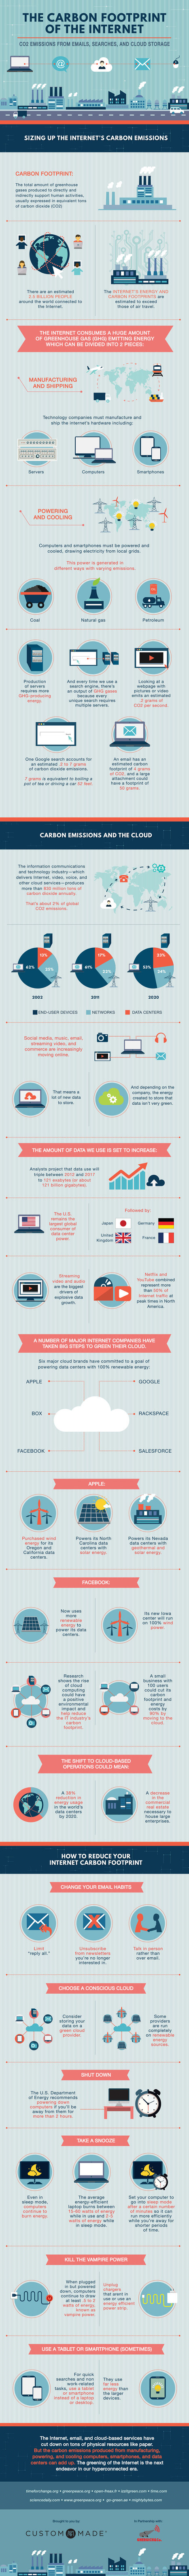 What's the carbon footprint of the Internet? [Infographic] | Communication design | Scoop.it